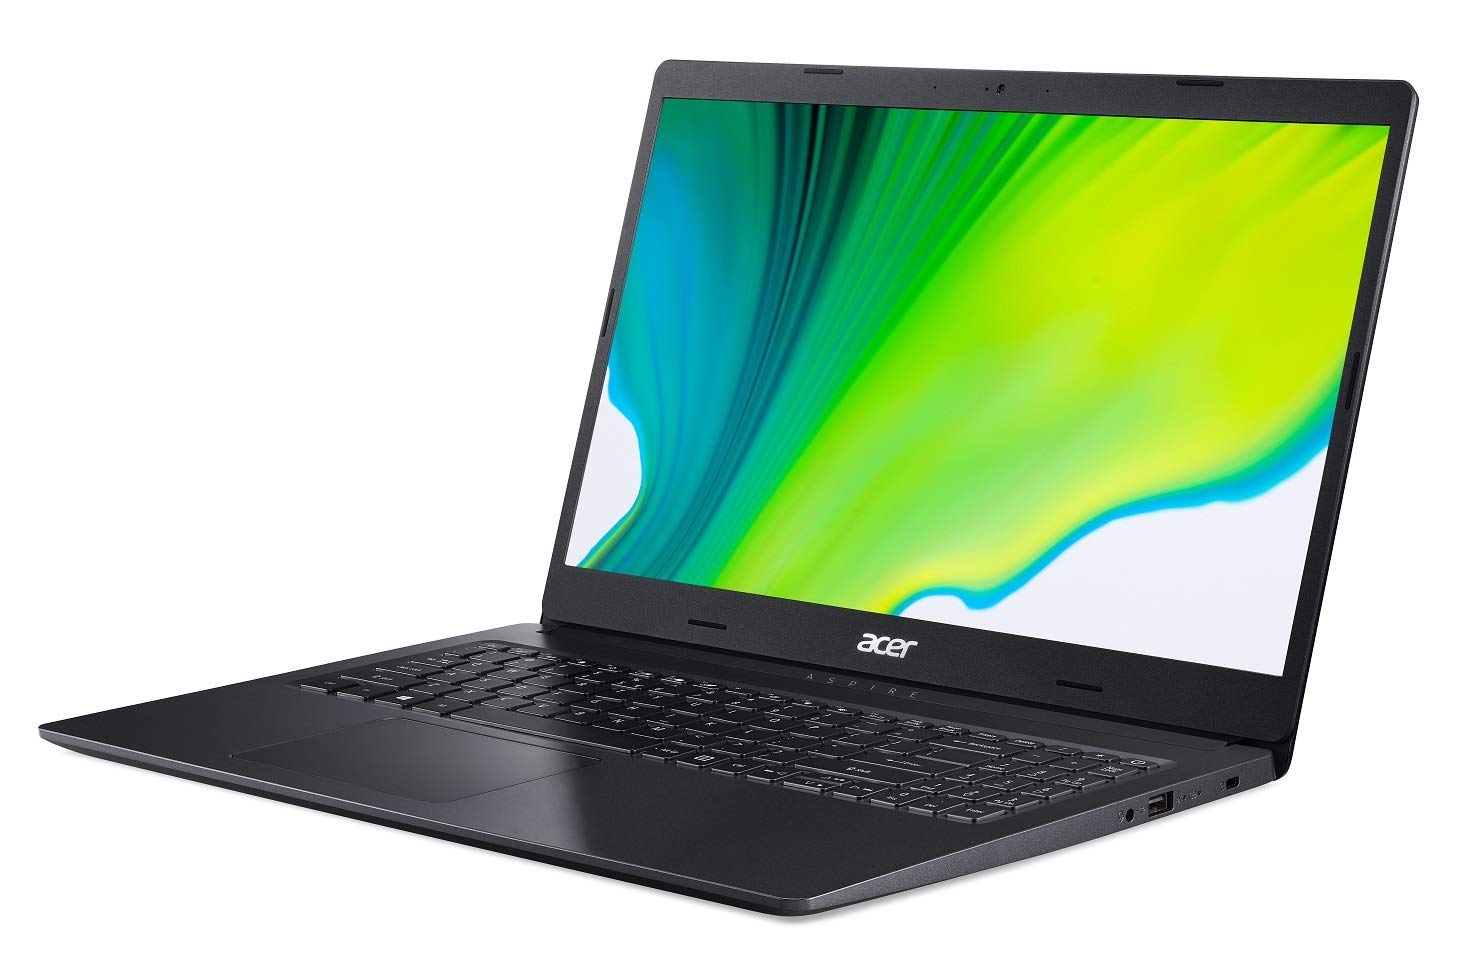 "Acer Aspire 3 Intel Core I5-1035G1 15.6"" FHD Display Thin And Light Laptop (8GB Ram/1TB HDD/Windows 10 Home/Nvidia MX 330 Graphics), Charcoal Black/1."